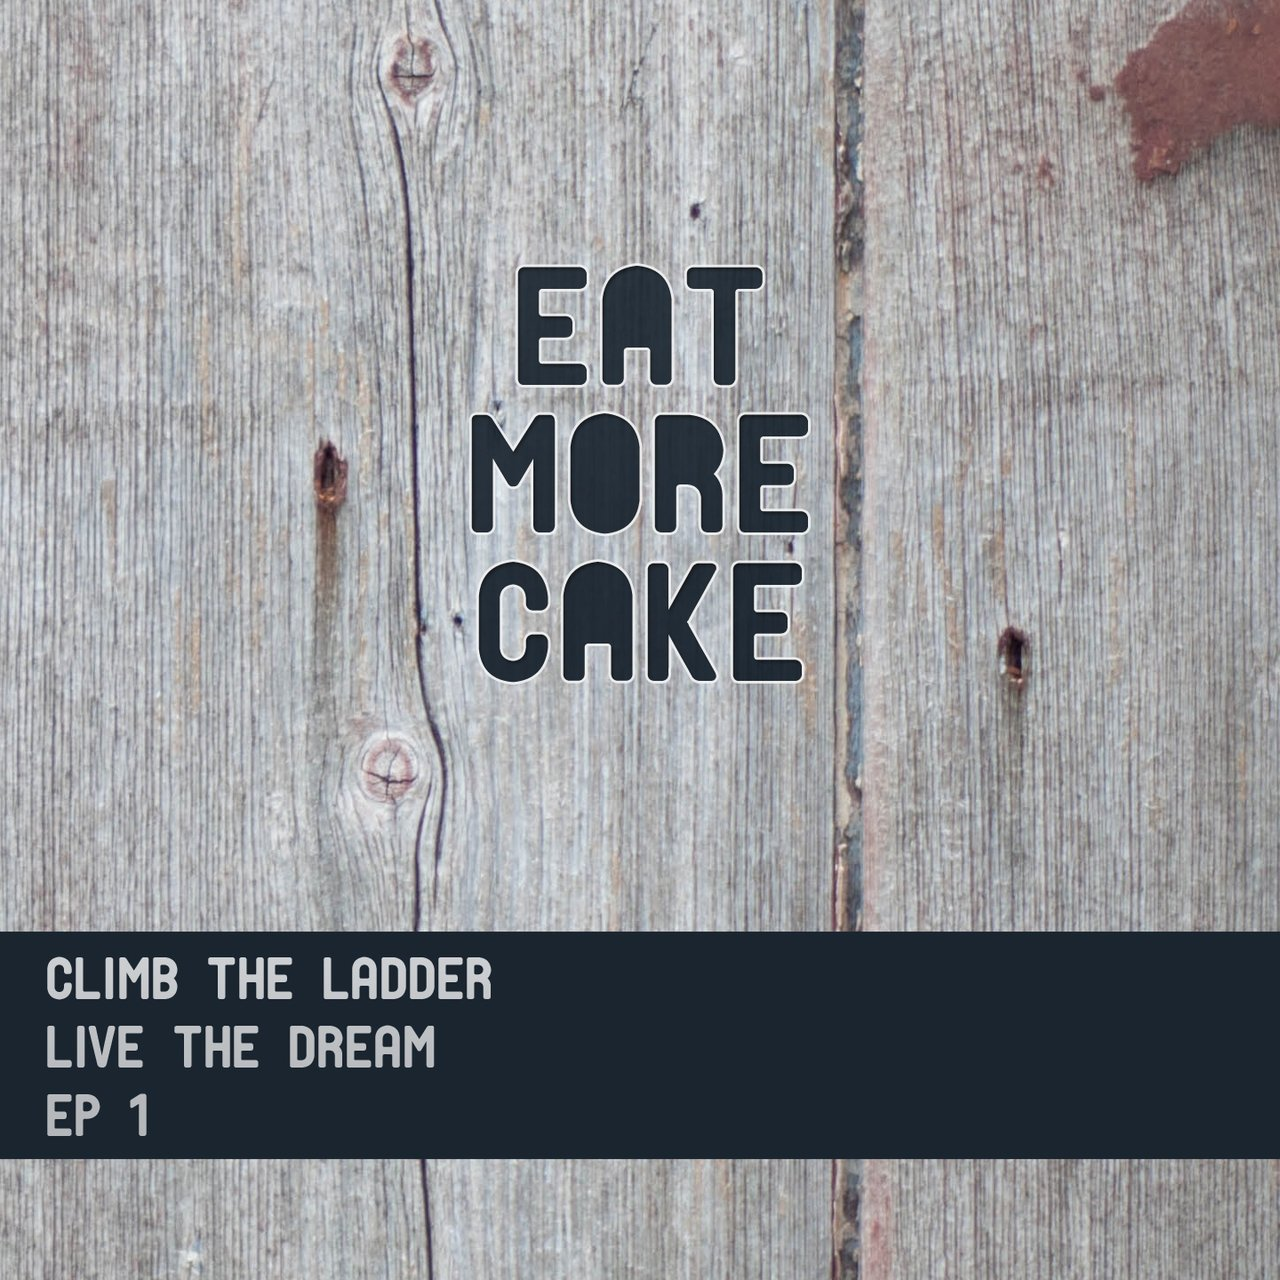 Climb the Ladder: Live the Dream EP 1